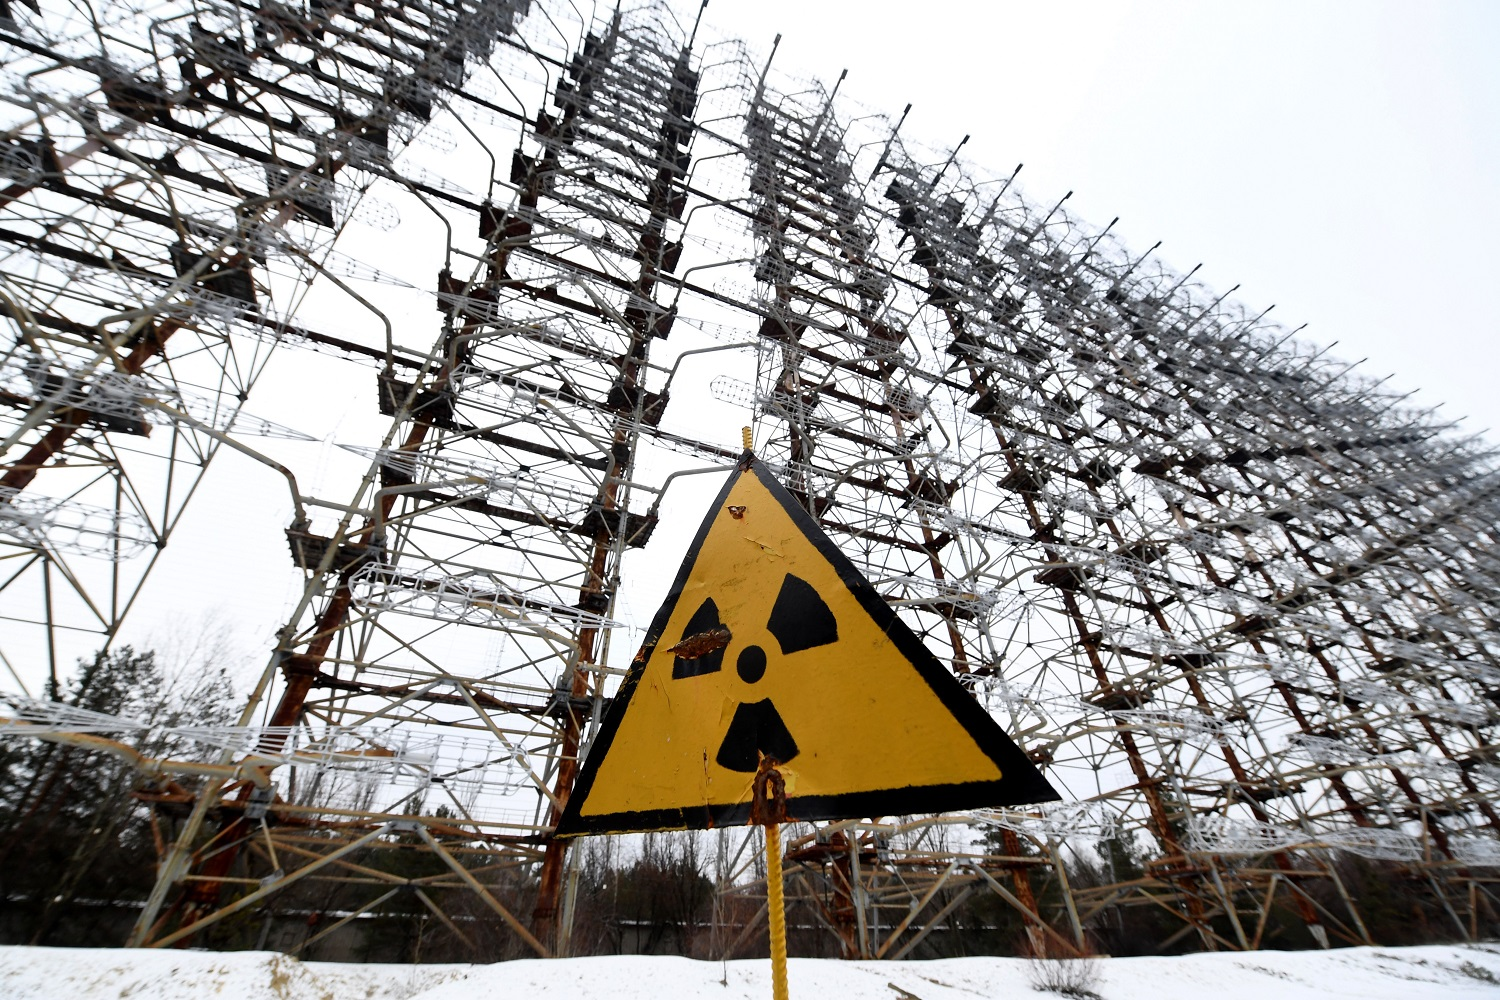 Low-Yield Nukes Are A Danger, Not a Deterrent